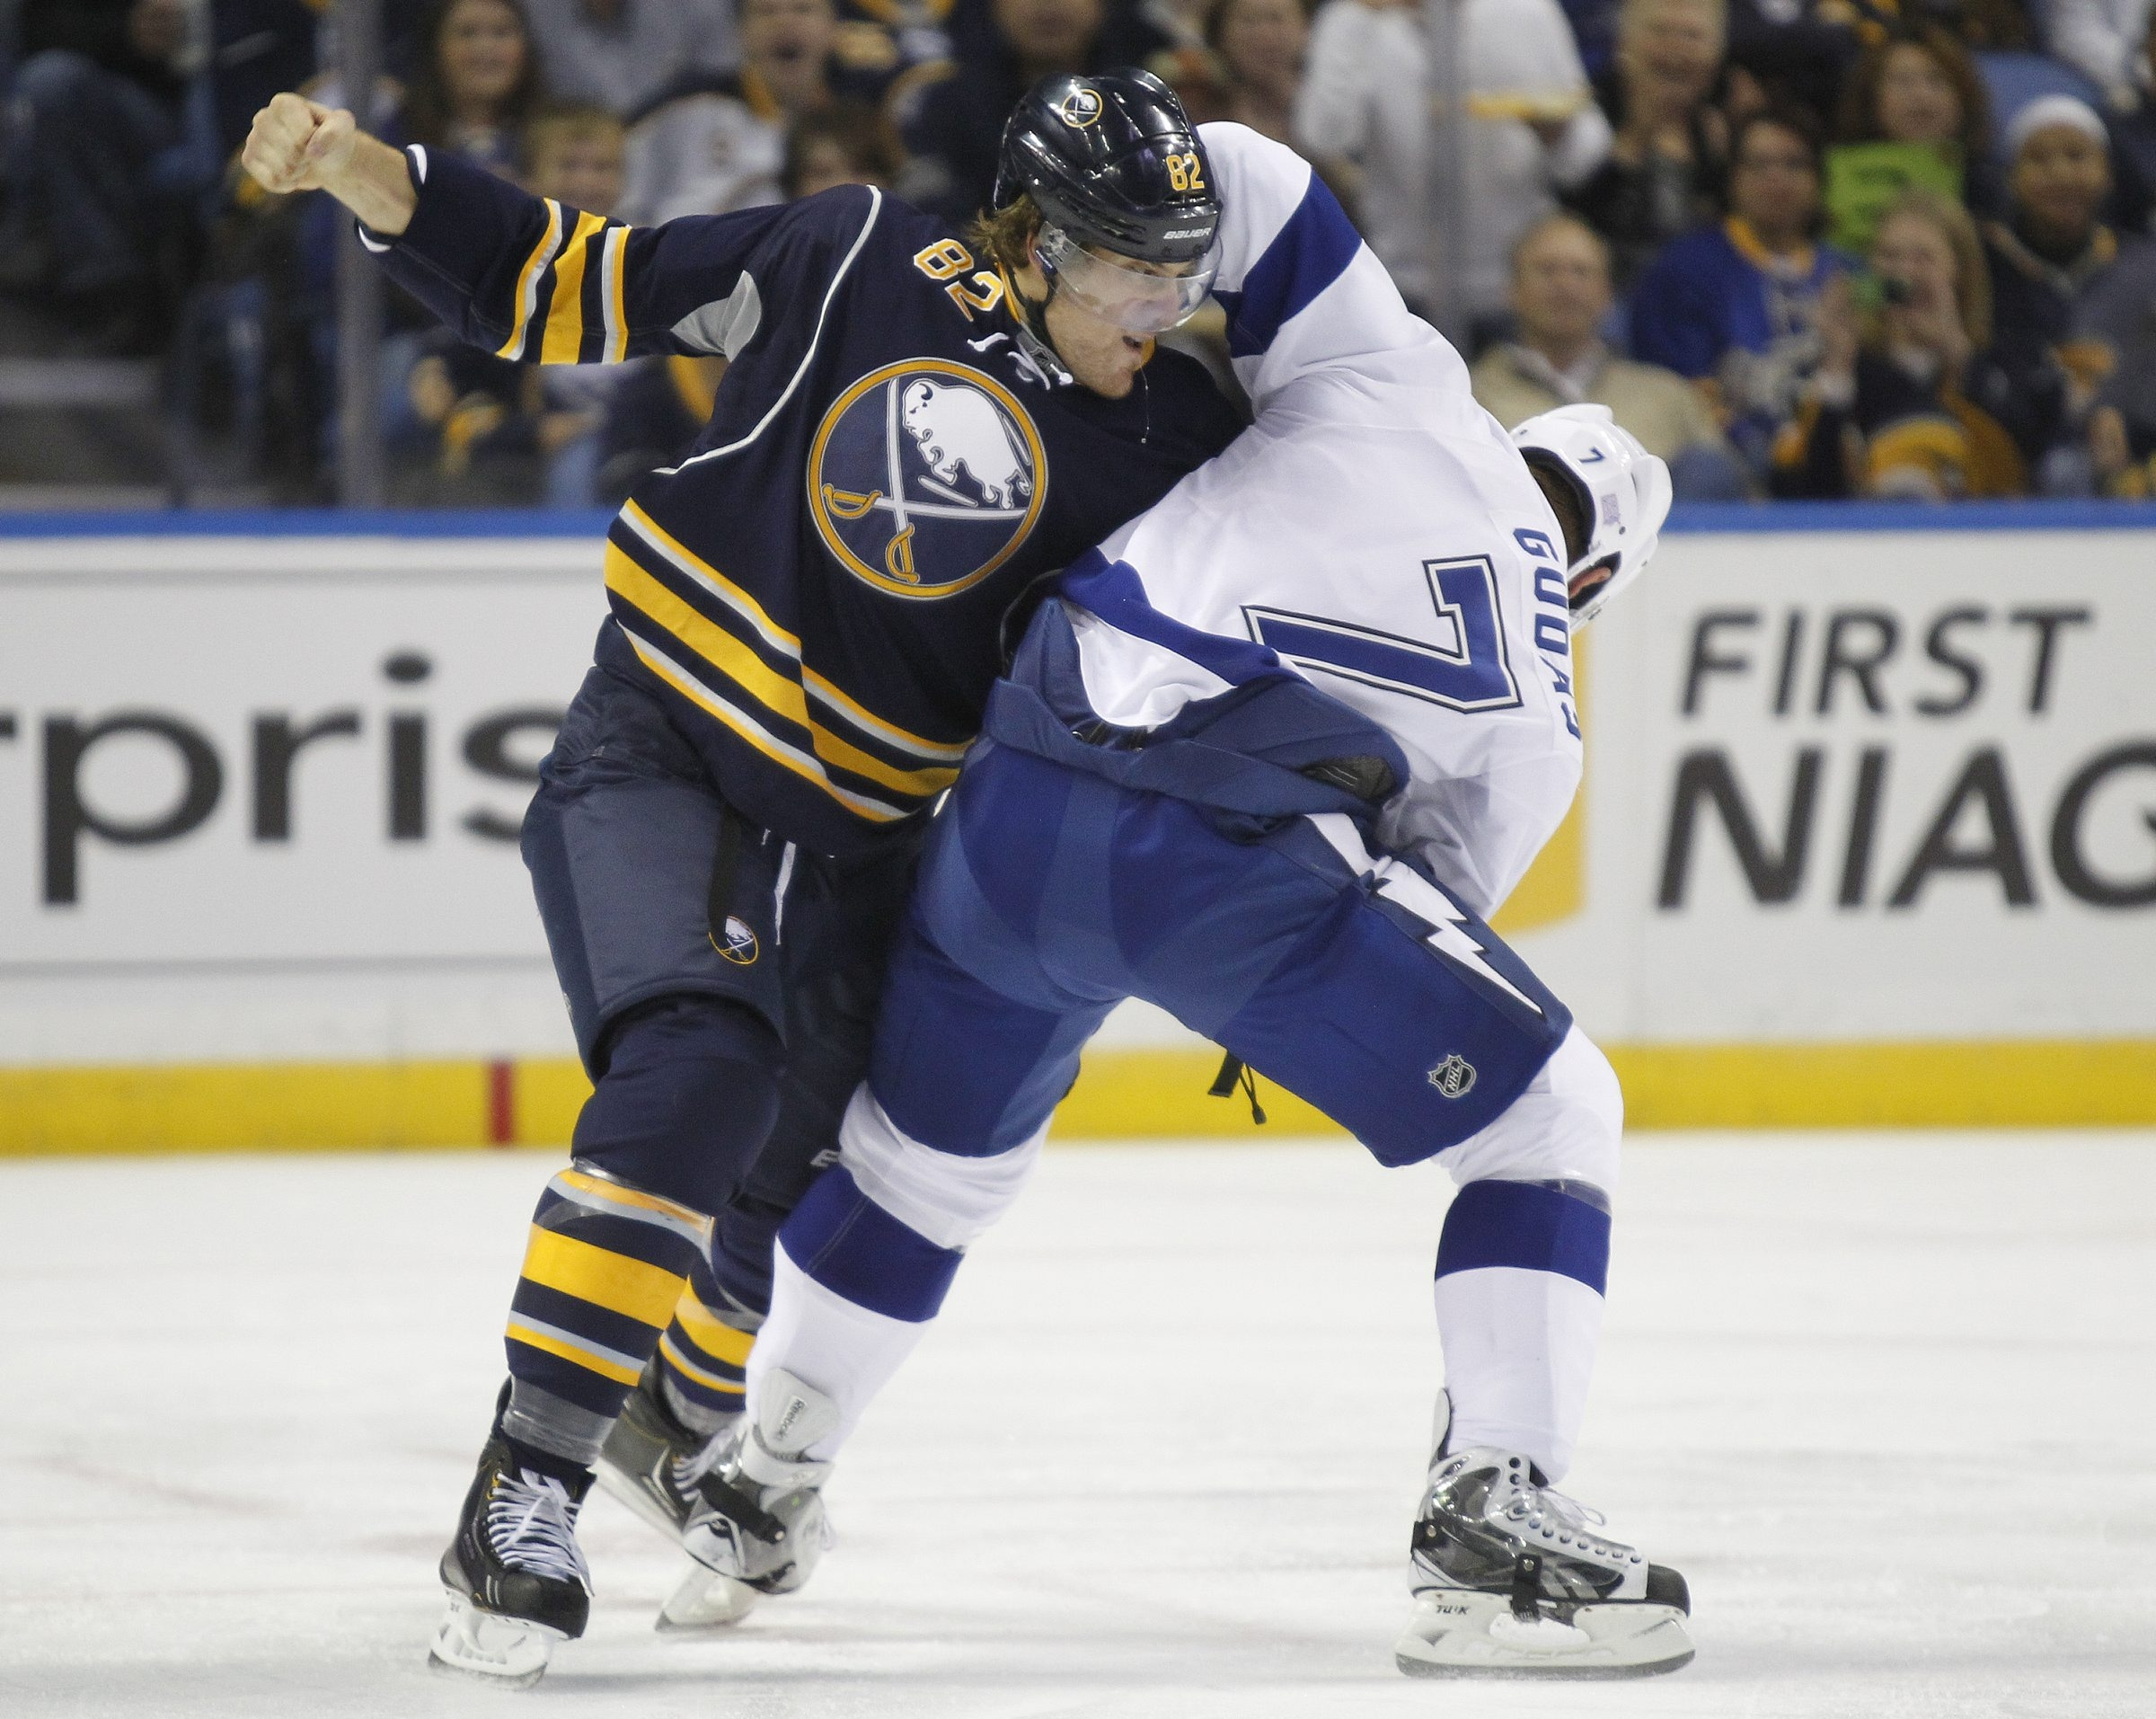 Buffalo's Marcus Foligno and Tampa Bay's Radko Gudas fight early in the first period of Tuesday's game at First Niagara Center.